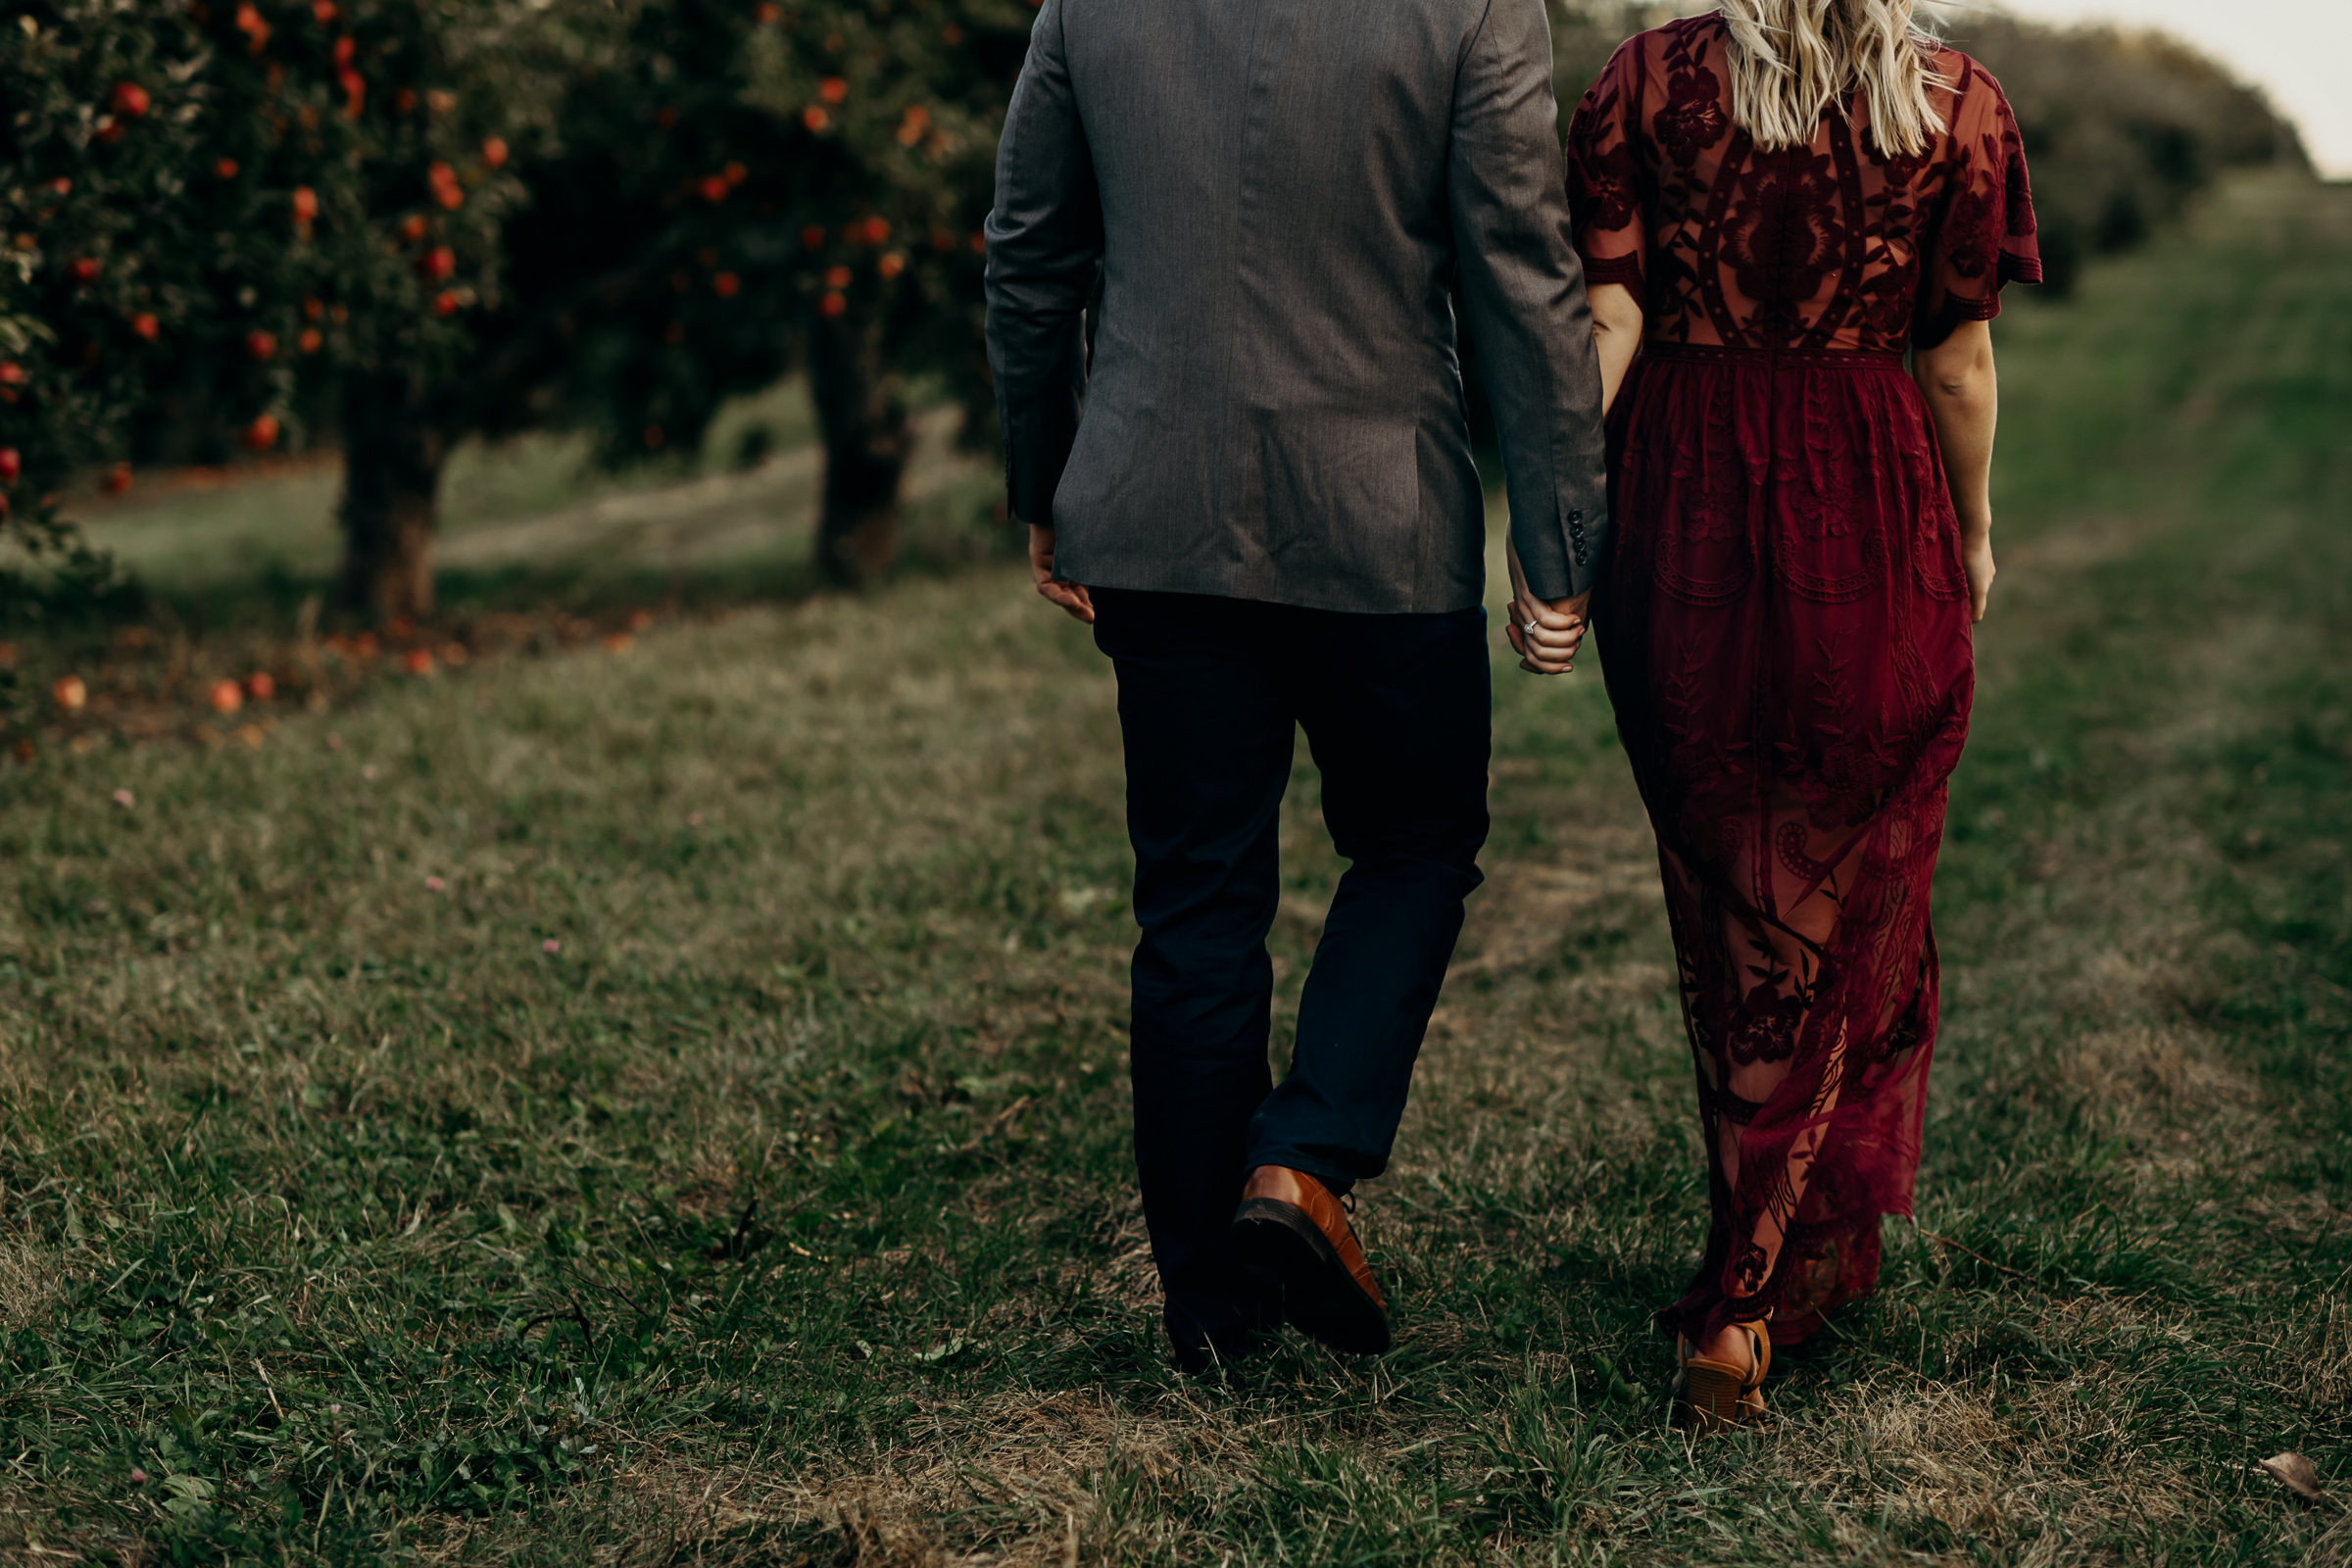 Engaged couple holds hands as they walk through an apple orchard.